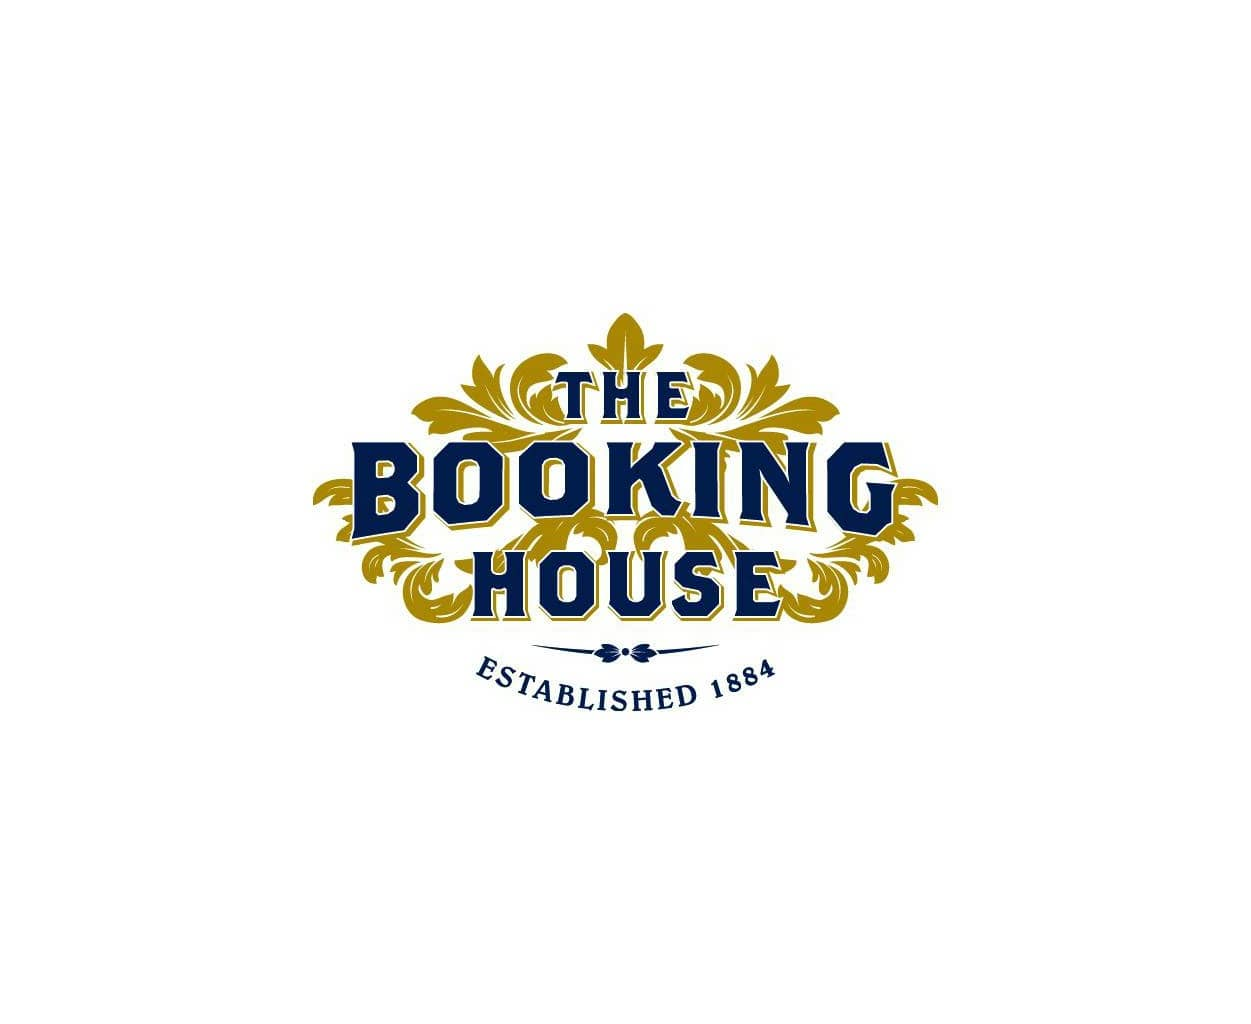 The Booking House logo